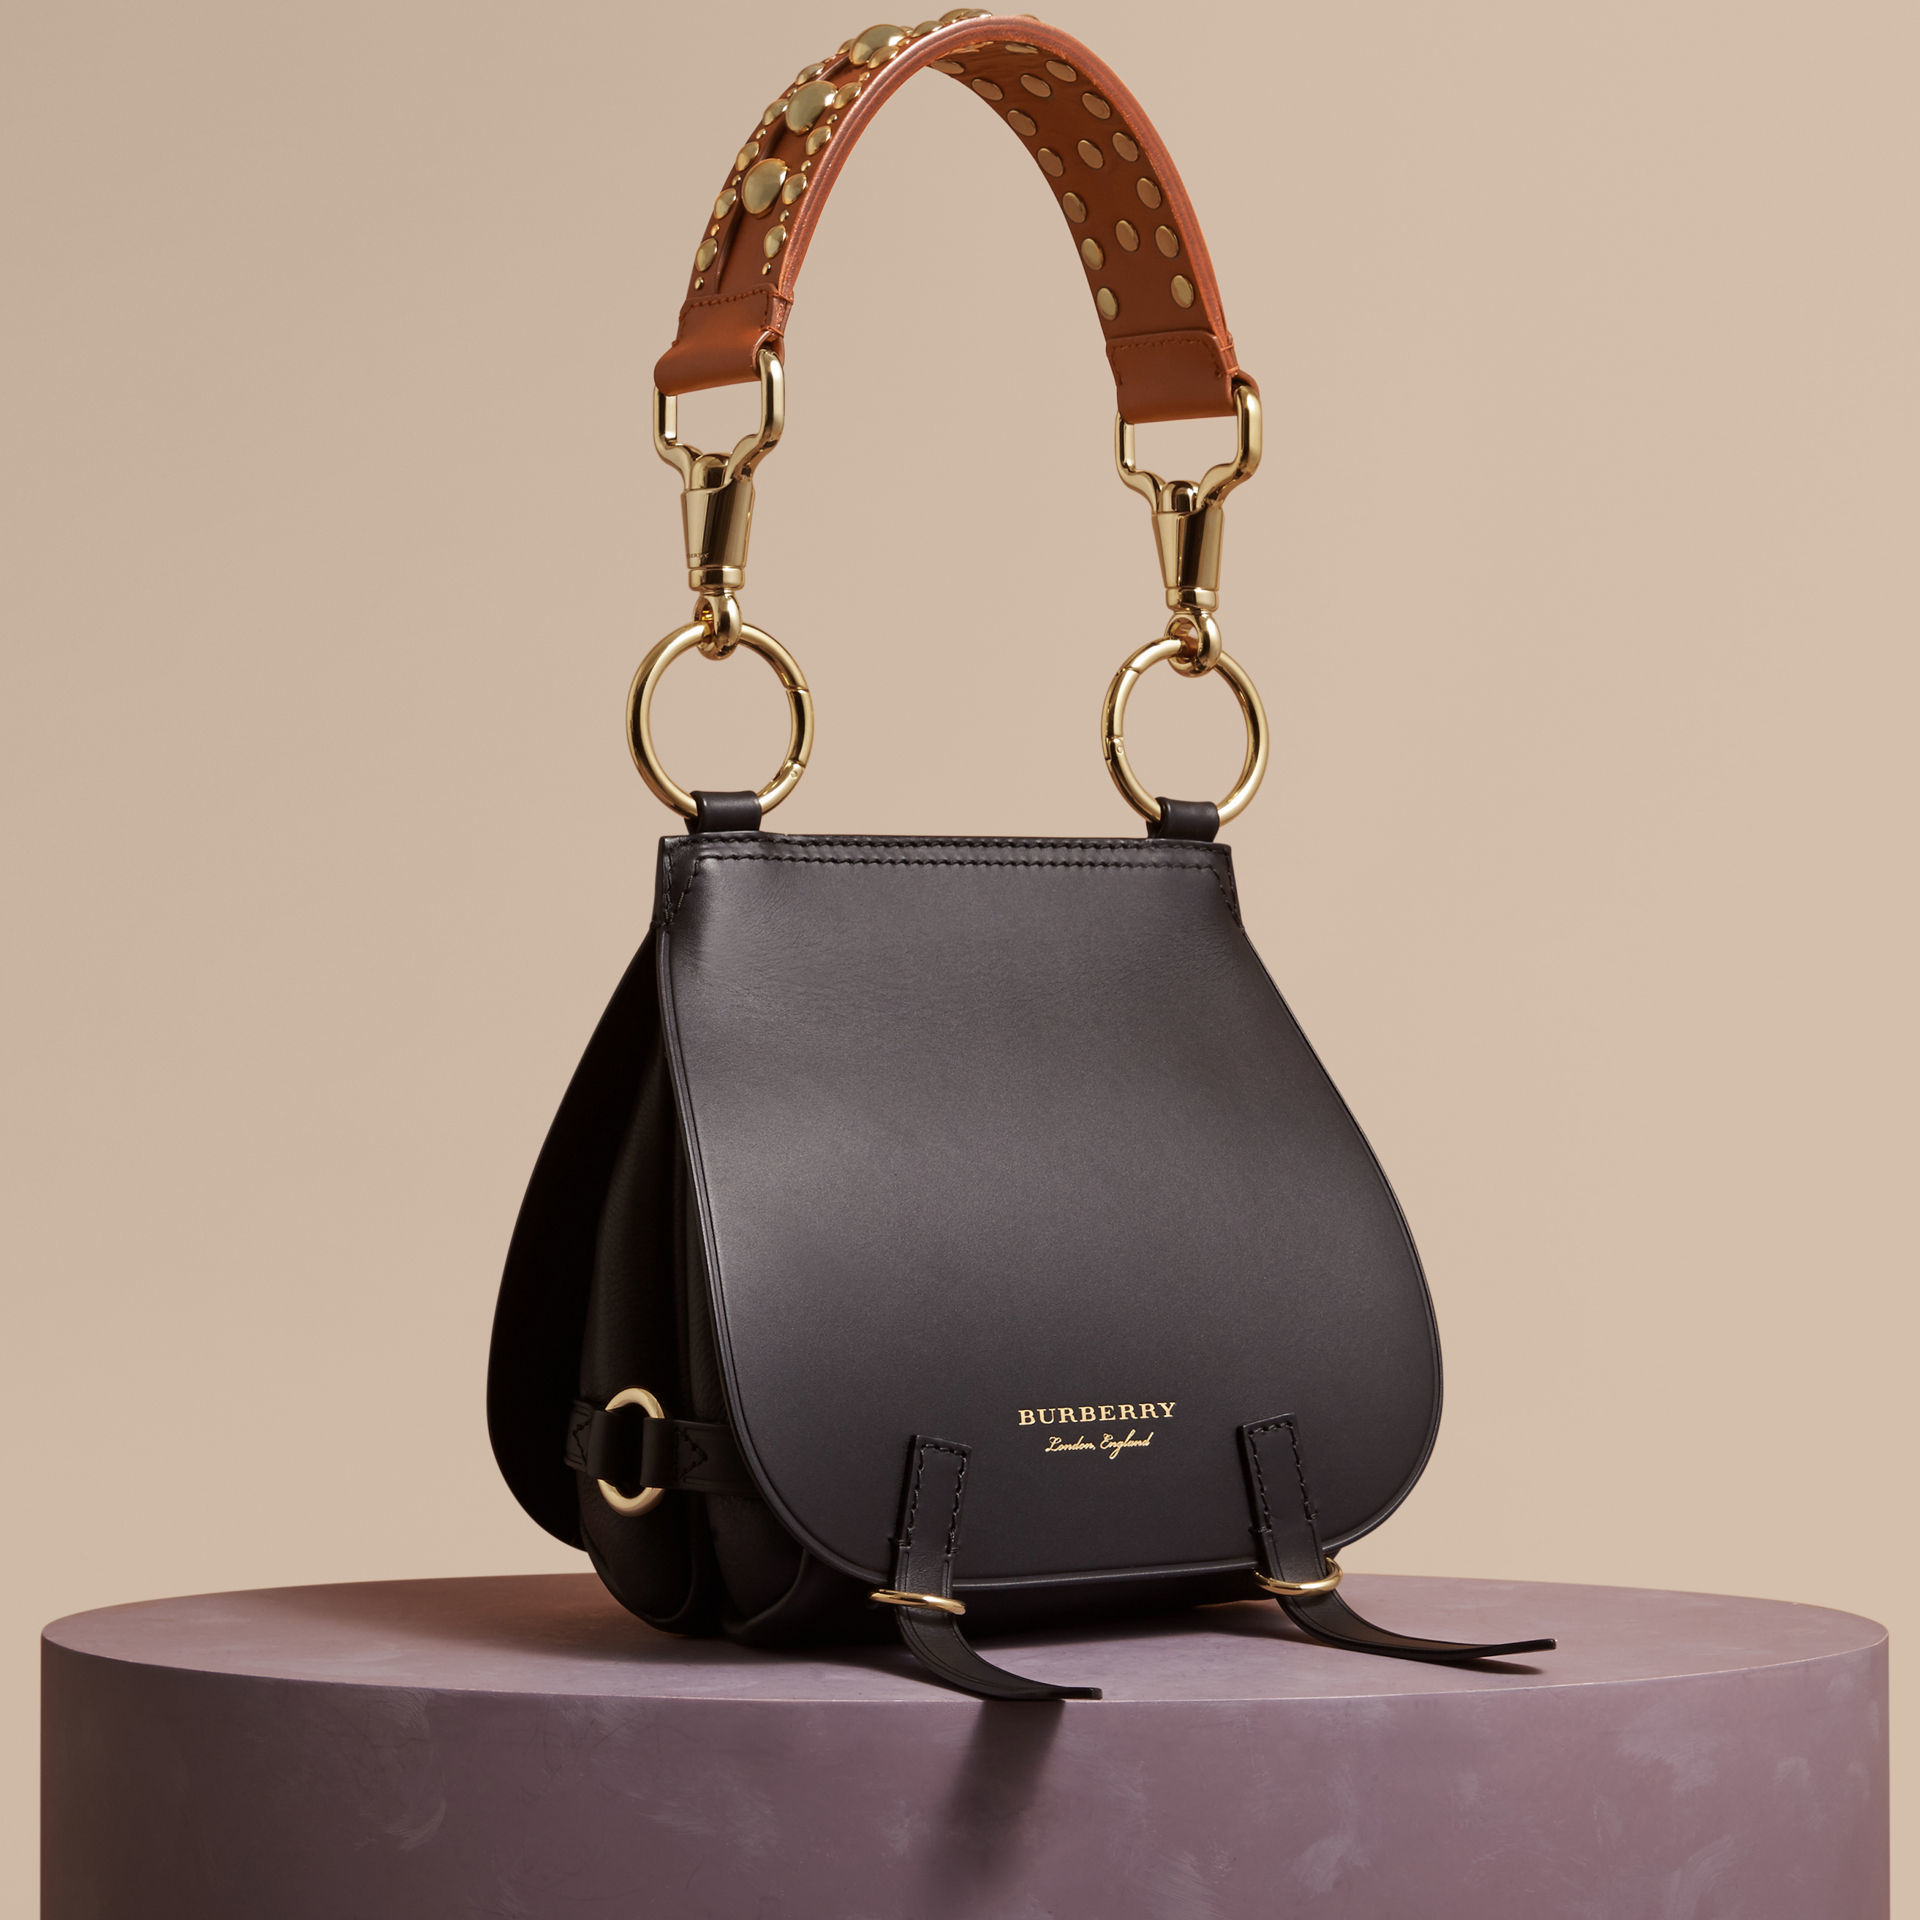 Lyst - Burberry The Bridle Leather Shoulder Bag